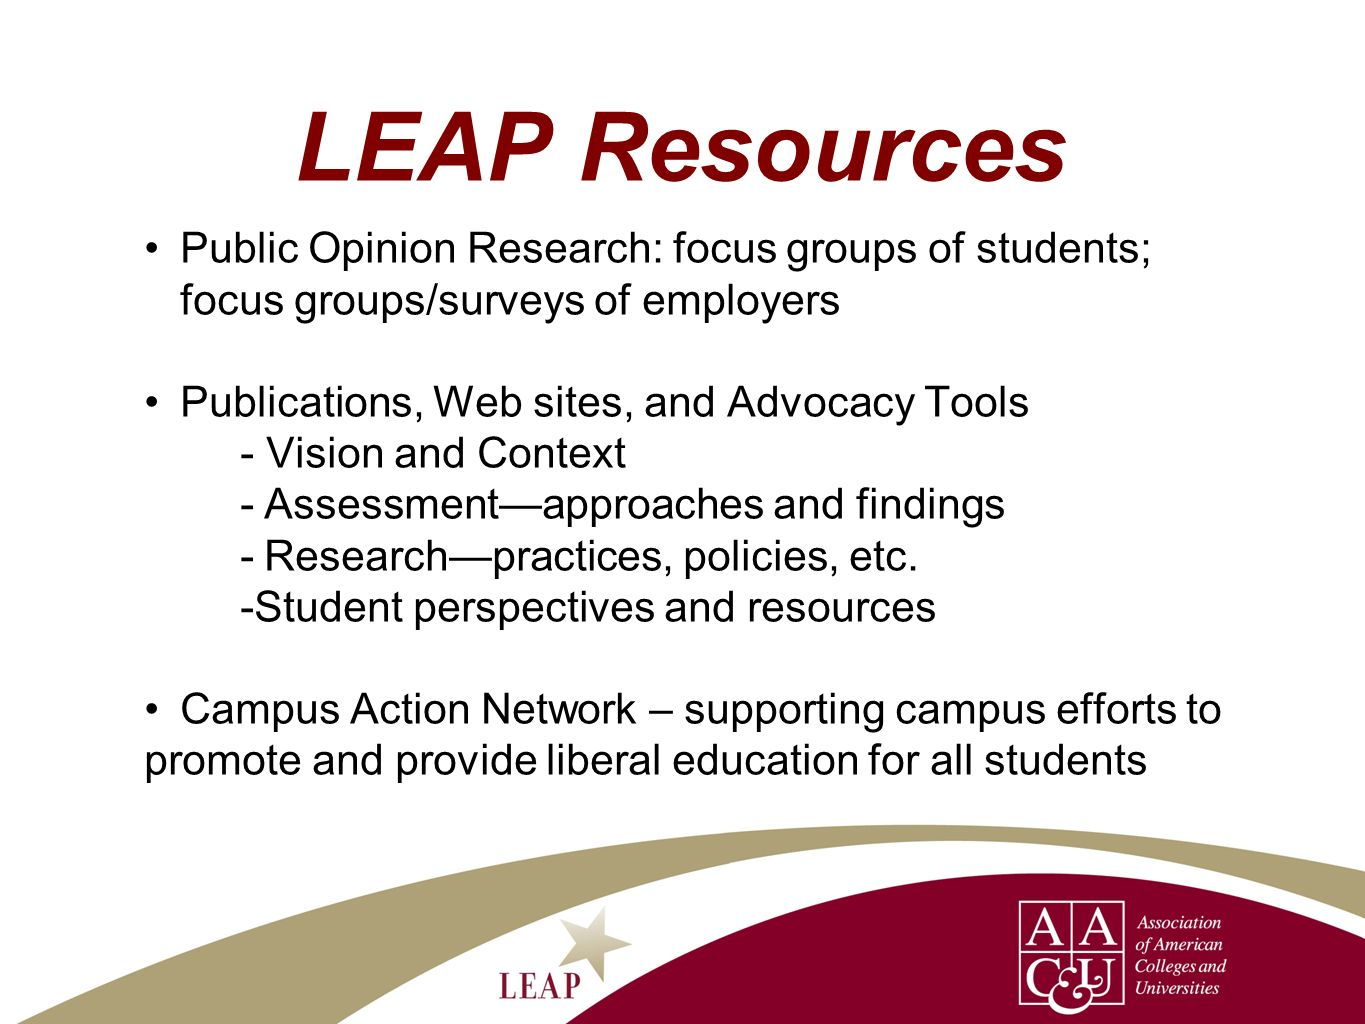 LEAP Resources Public Opinion Research: focus groups of students; focus groups/surveys of employers Publications, Web sites, and Advocacy Tools - Vision and Context -Assessmentapproaches and findings -Researchpractices, policies, etc.